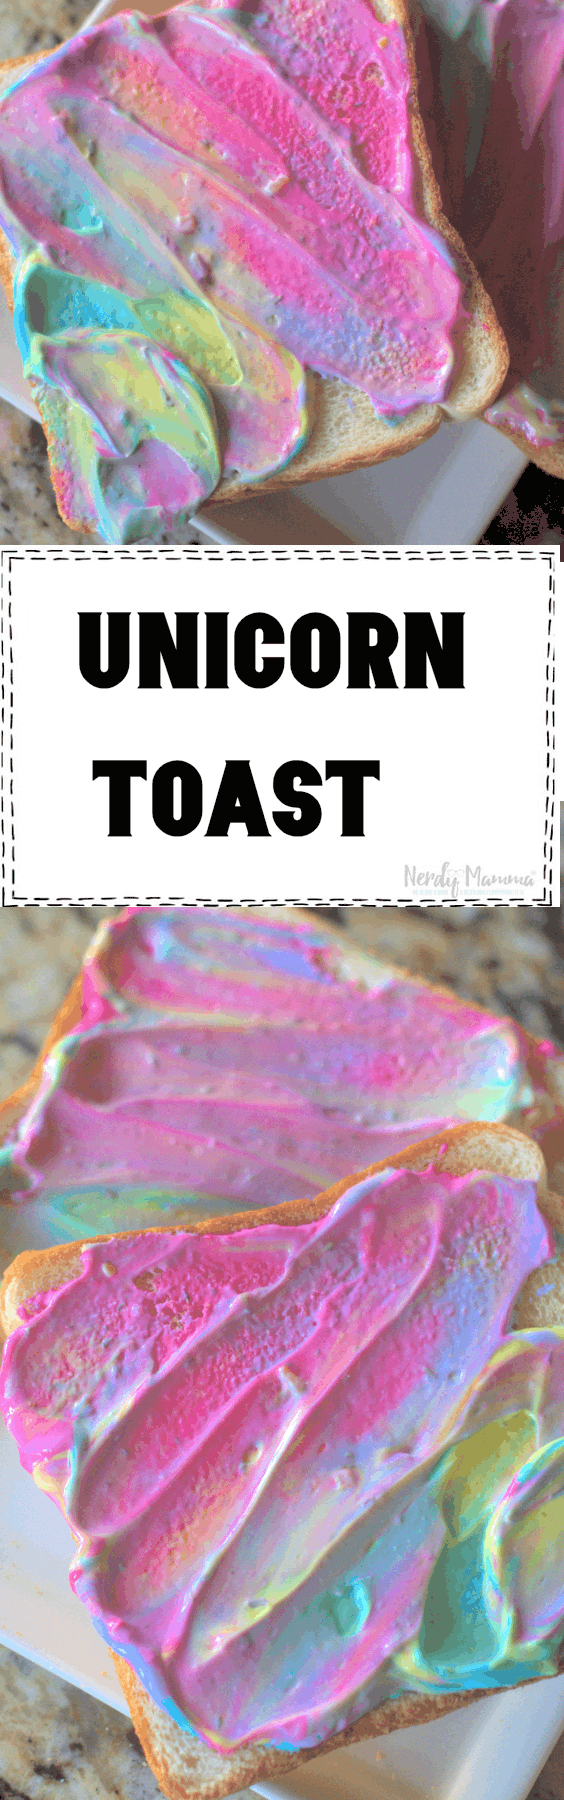 A ridiculous way to play with your kids' food and have fun with them. Because, frankly, having fun is one of the best things you can do with a kid. Breakfast Unicorn Toast. Freaking genius way to start a kid's day every once in a while. #nerdymammablog #unicorn #unicornfood #breakfast #unicornbreakfast #sillyfood #funwithfood #funfood #toast #creamcheese